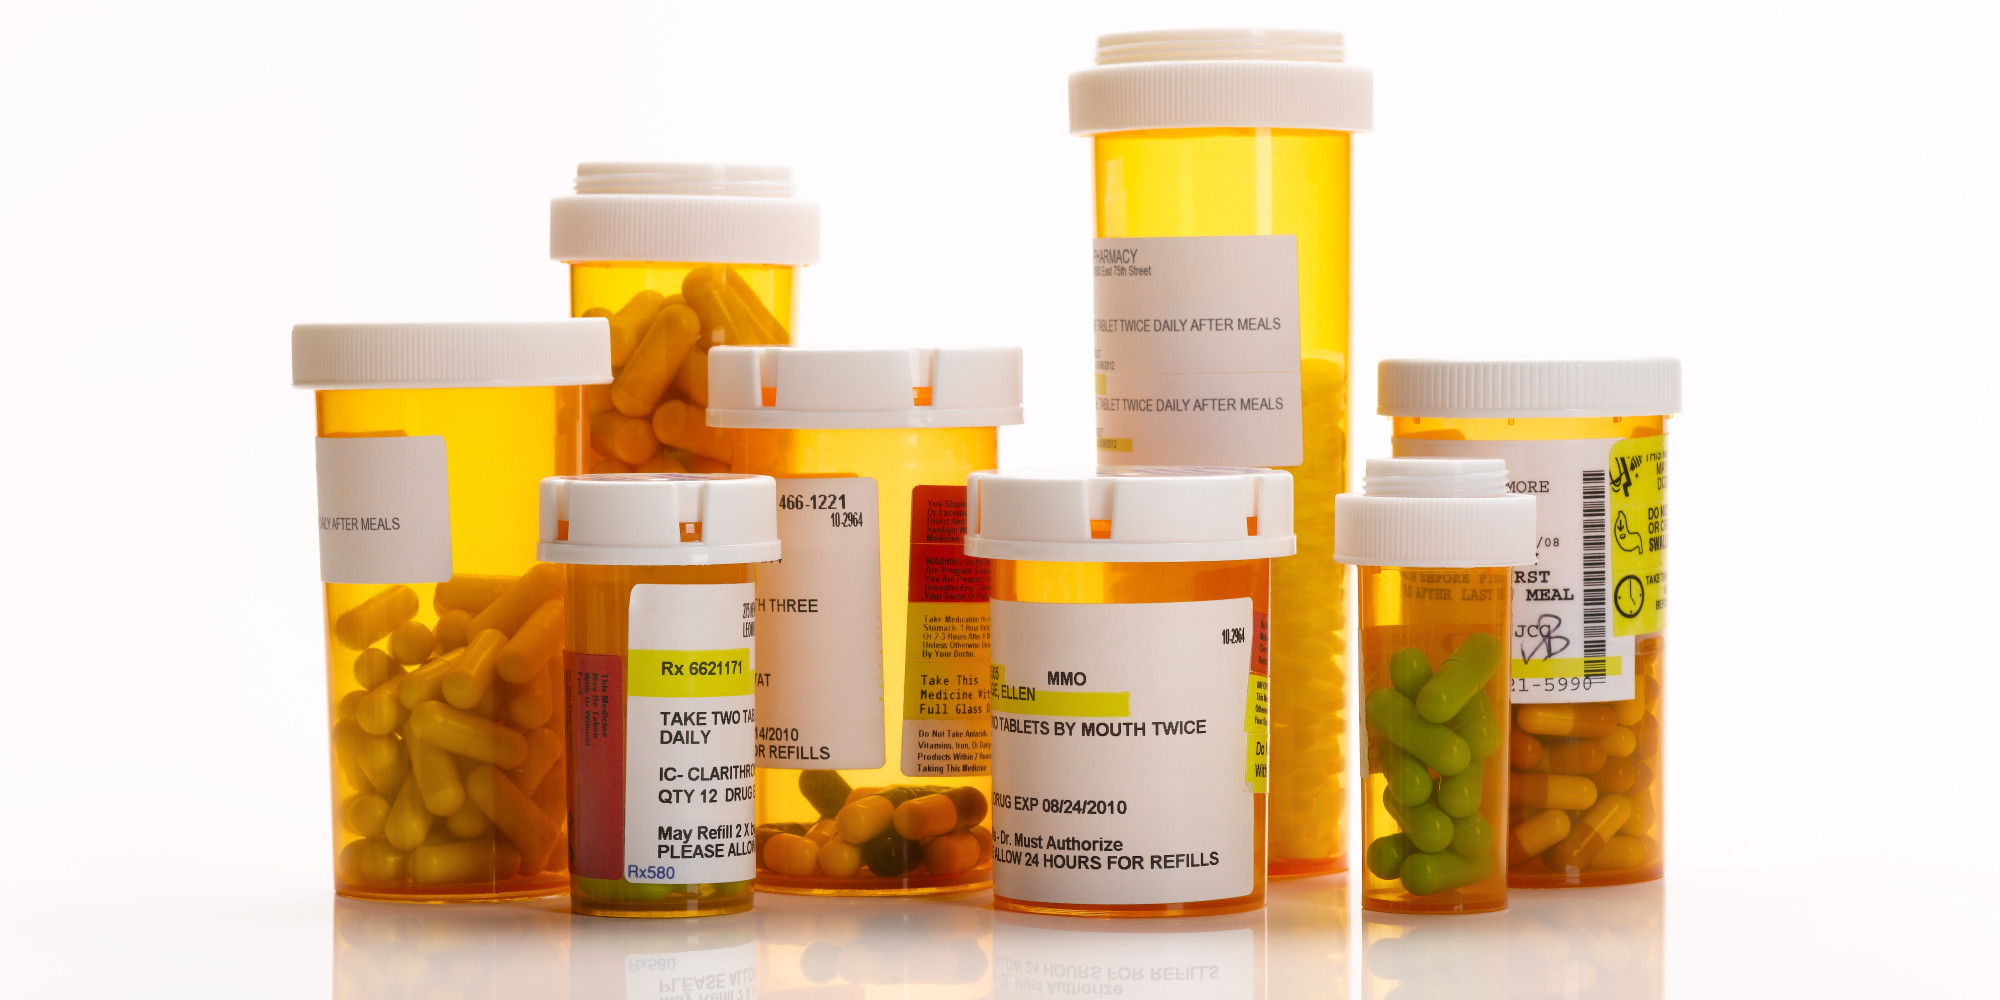 What are Psychoactive Drugs? - Definition, Types & Uses